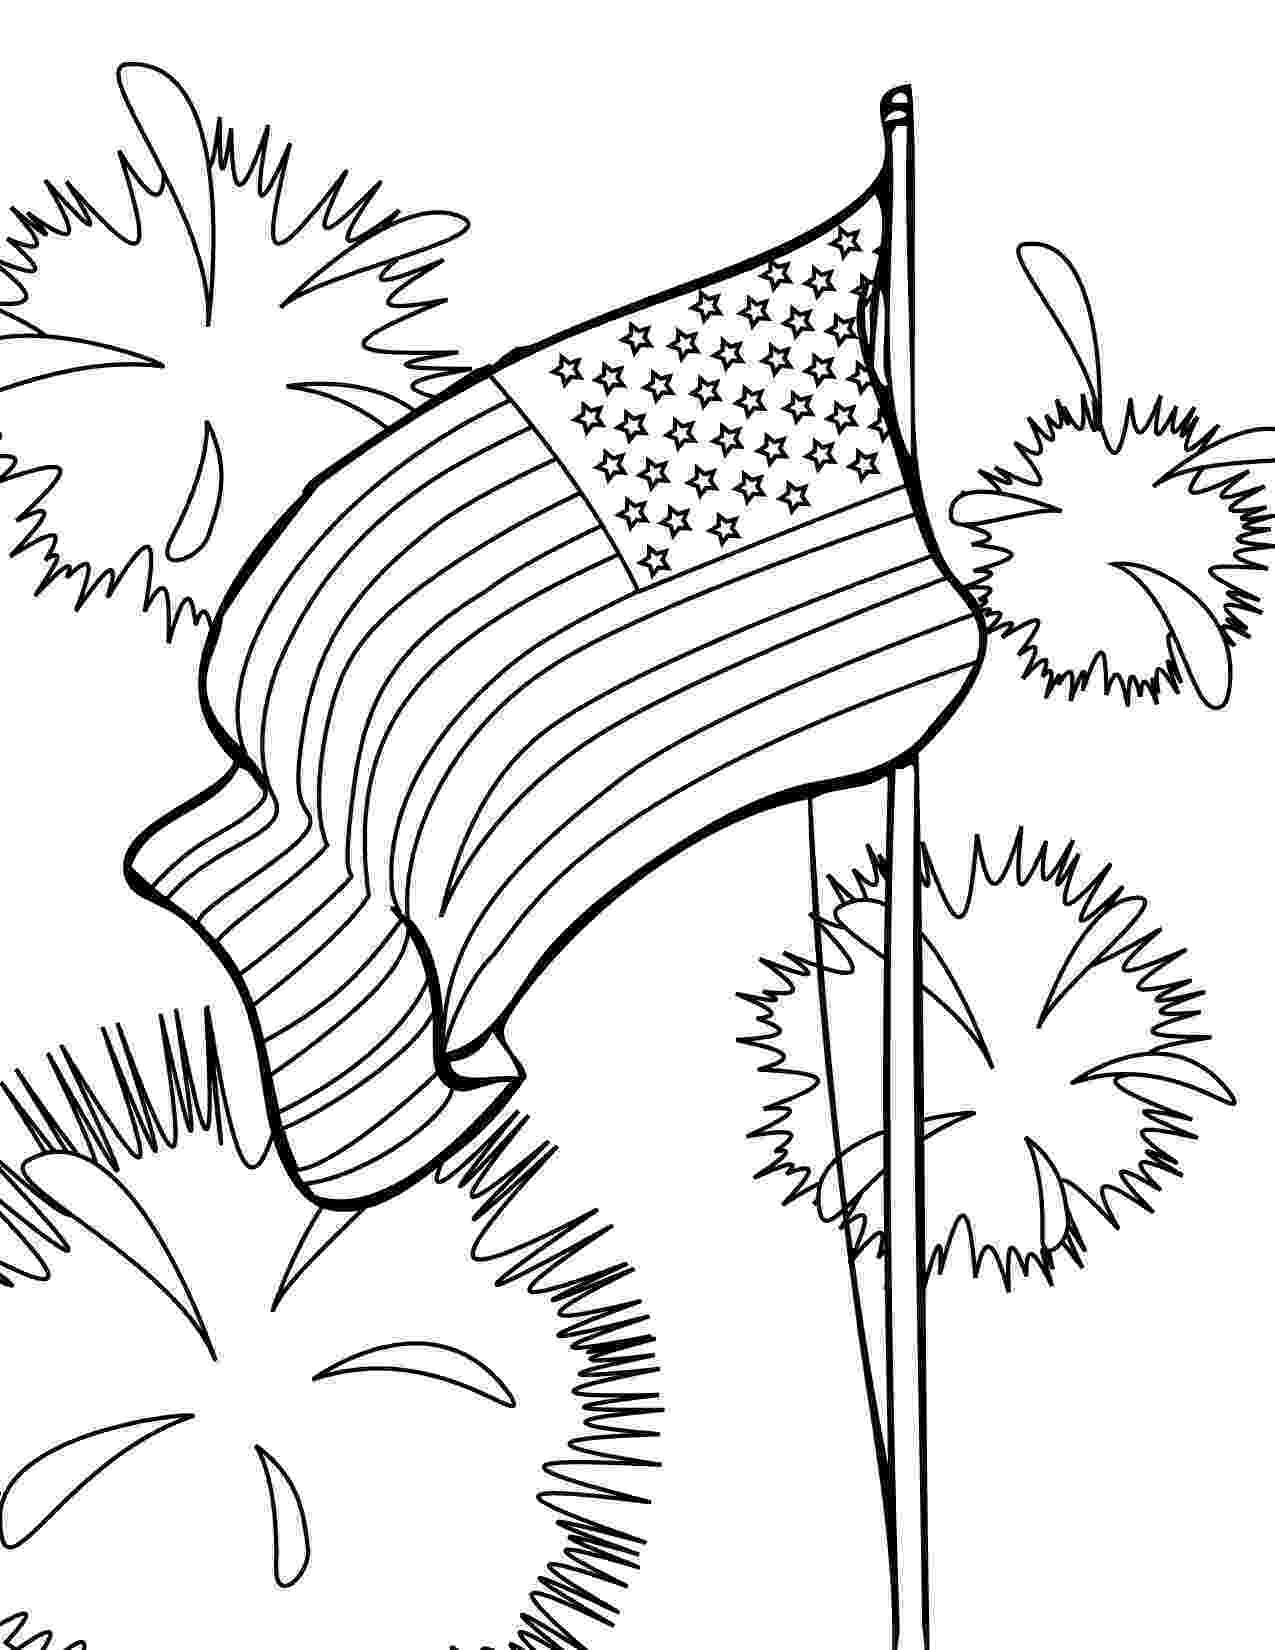 coloring flags flag coloring pages to download and print for free flags coloring